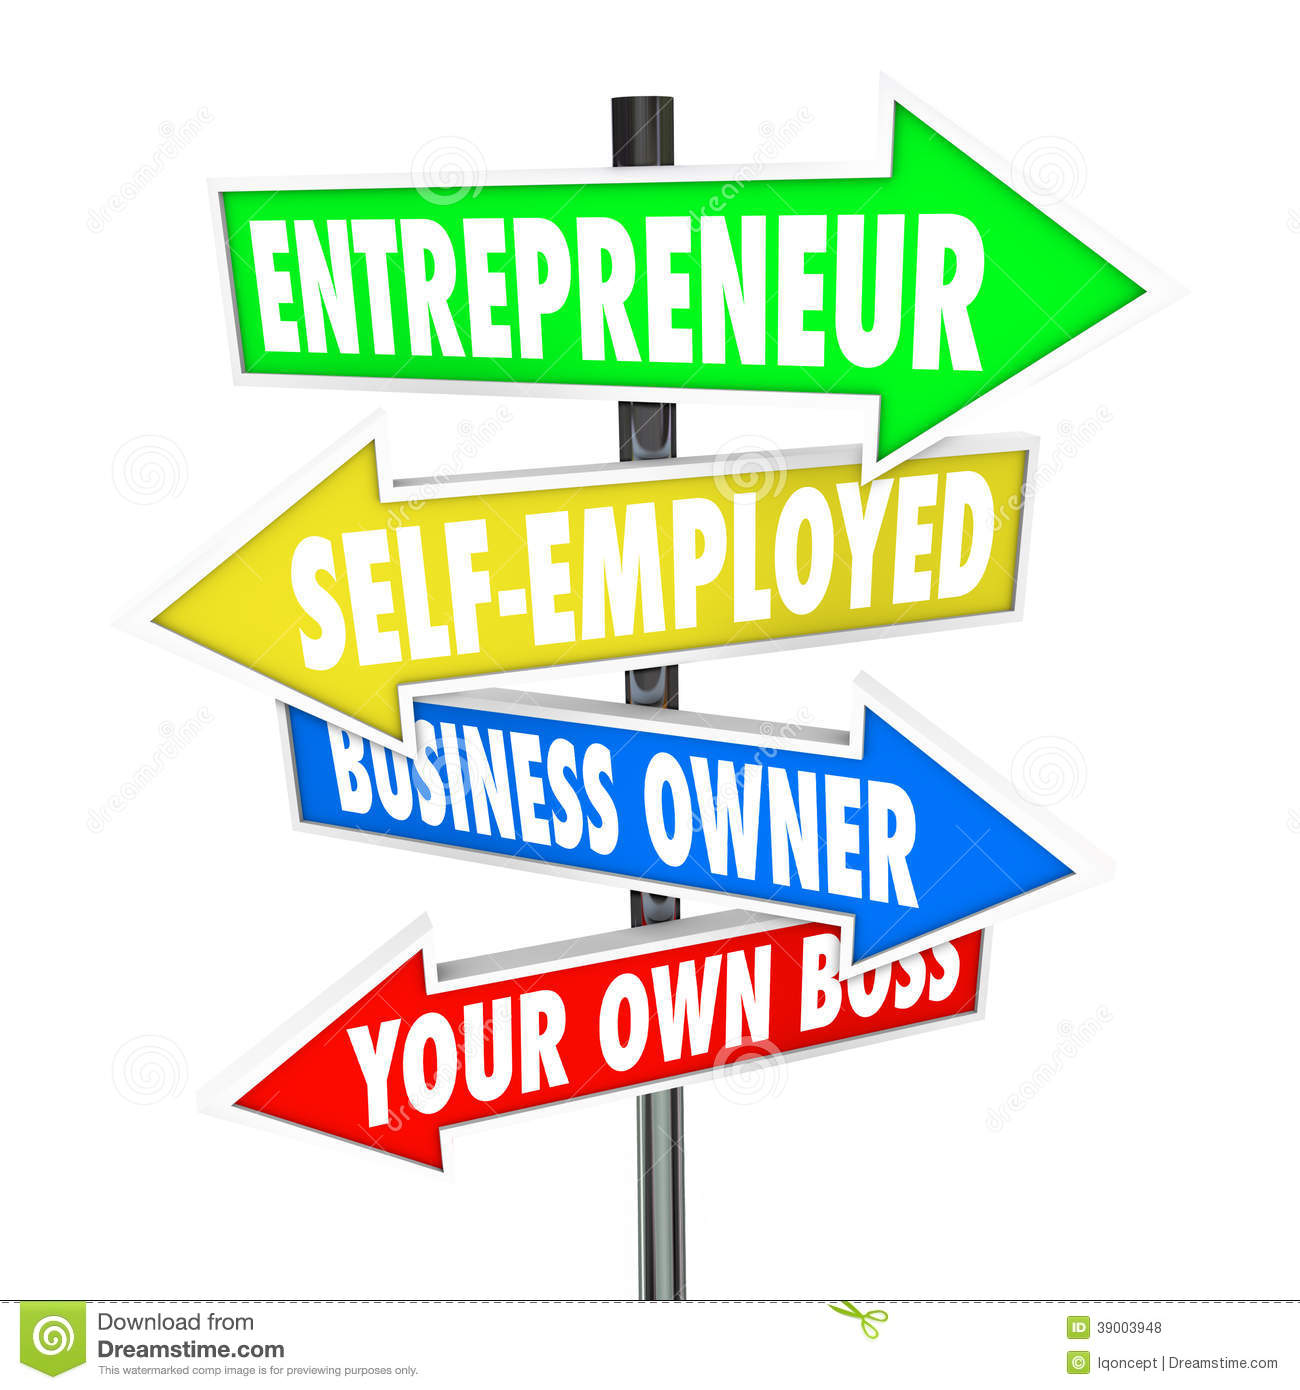 entrepreneurs vs small business owners A collection of statistics you can use on canadian women in business and the women business owners are younger and have fewer years of management or ownership experience compared with male business owners women entrepreneurs are much more women entrepreneurs small business.